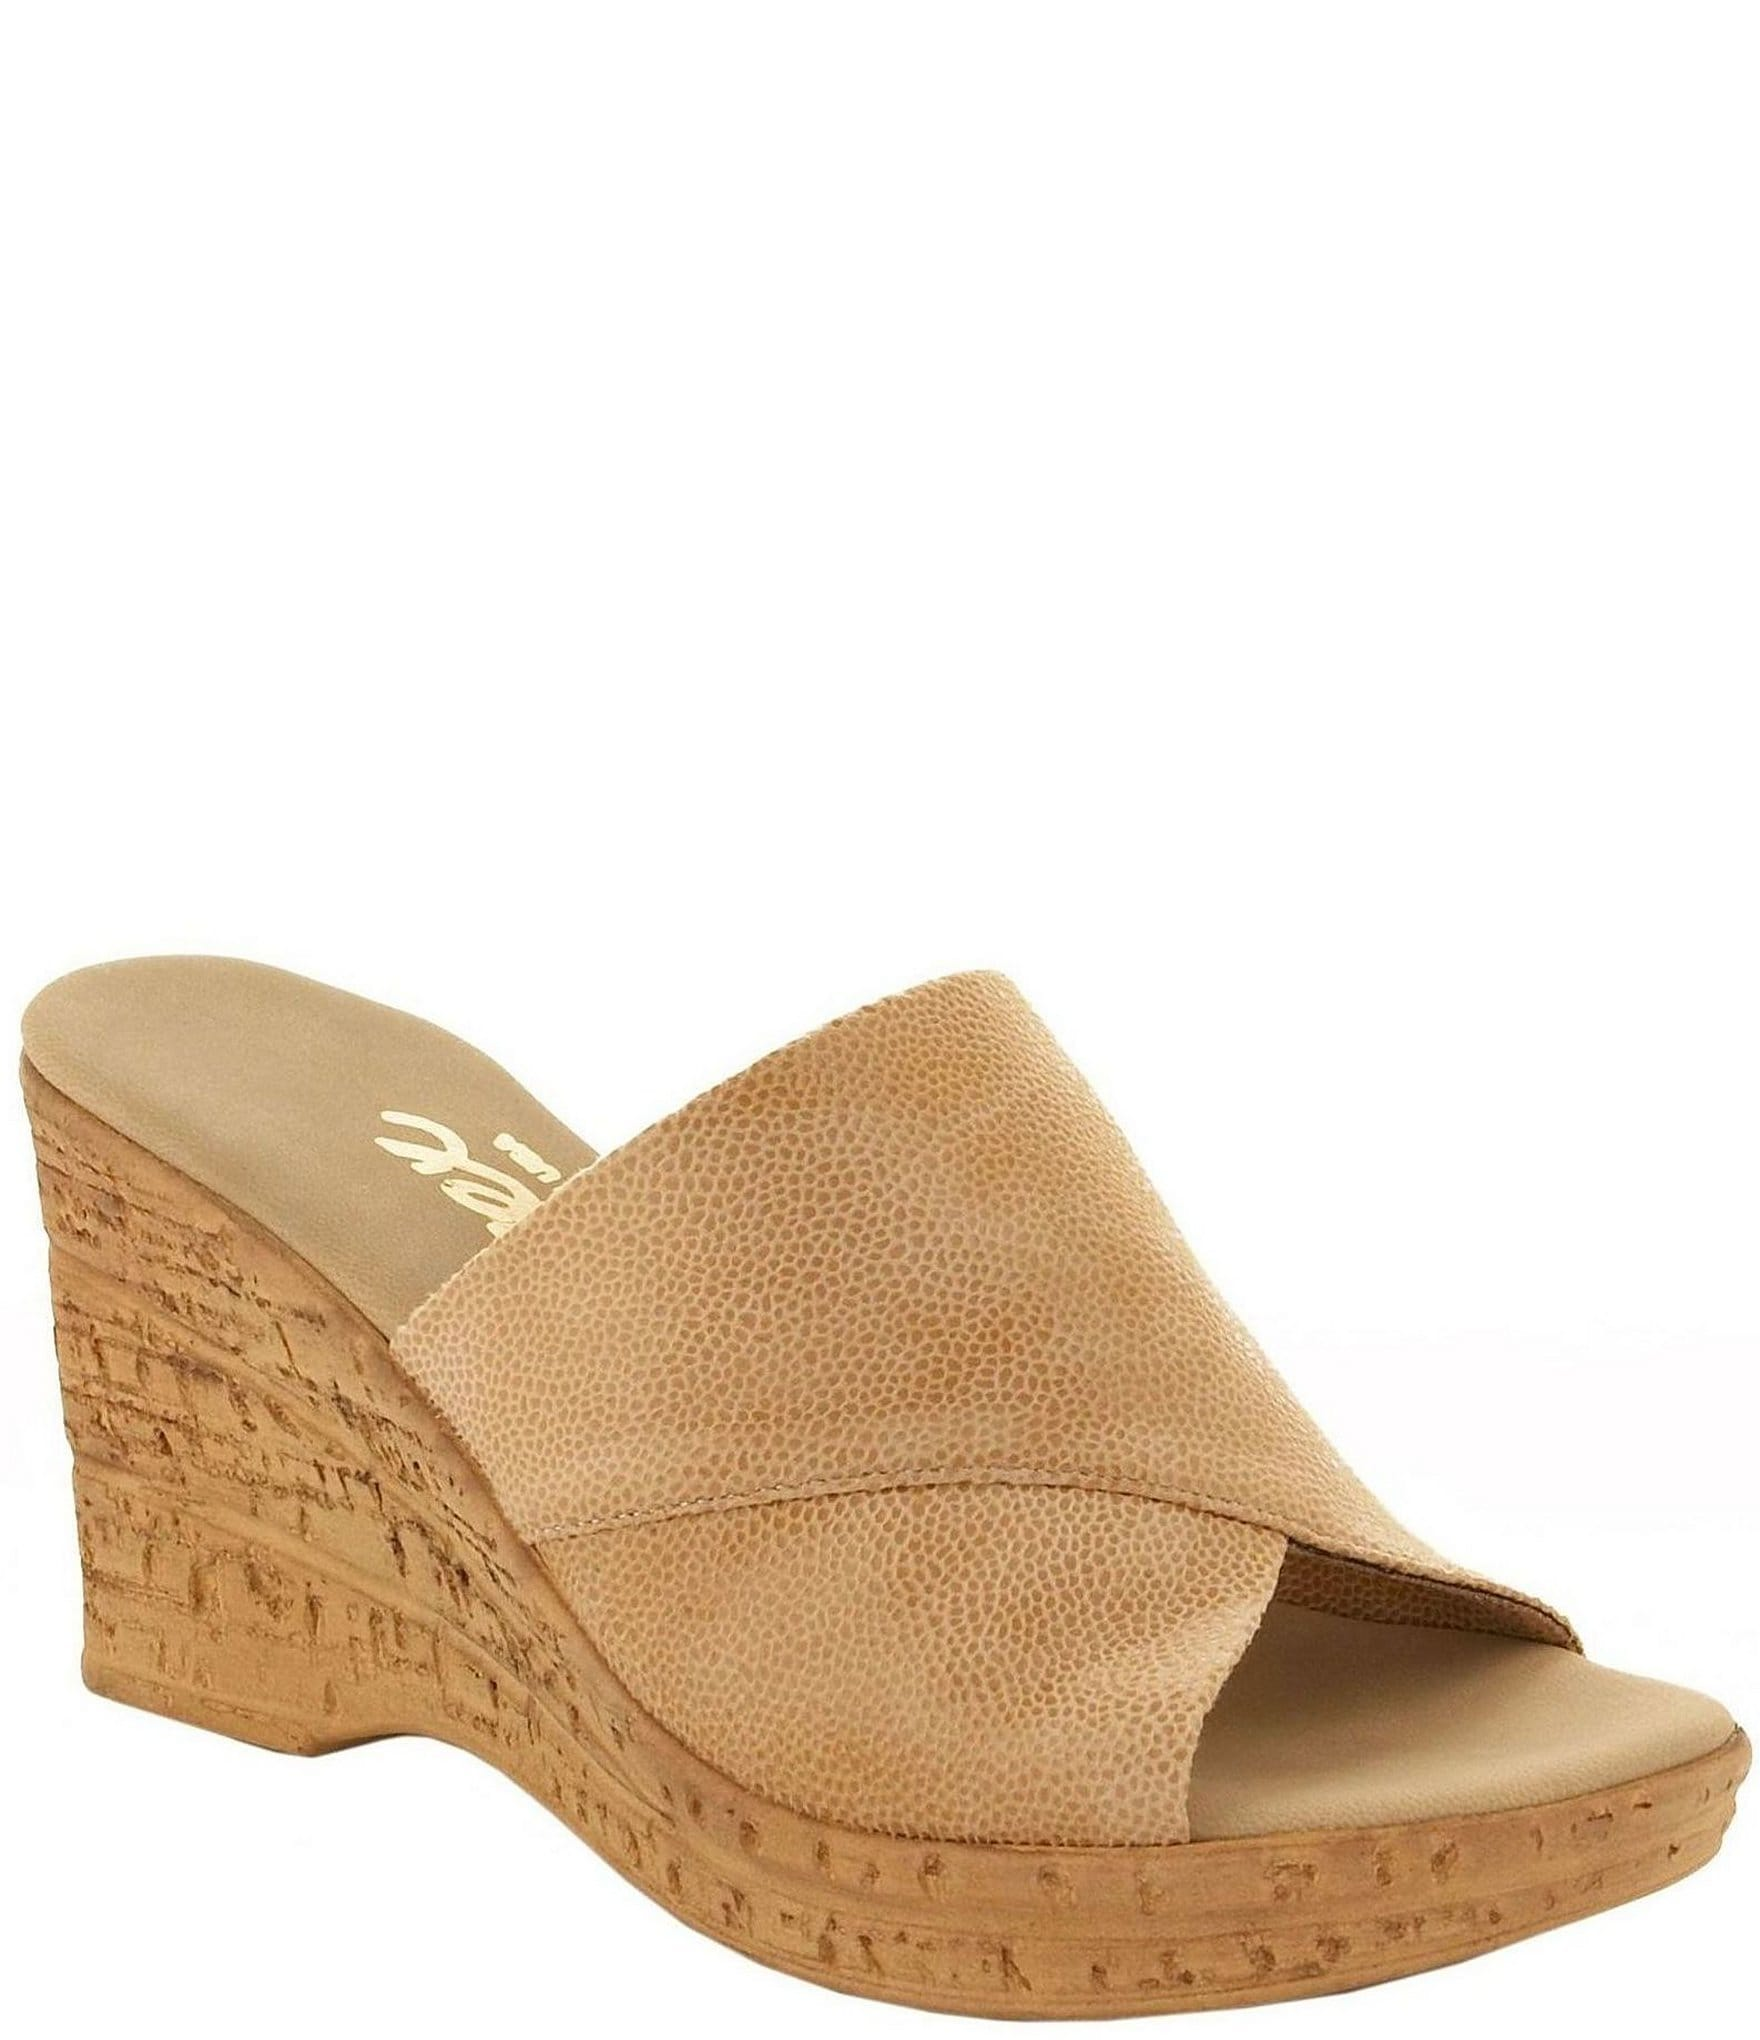 0d4f79995b Onex Women's Wedge Sandals | Dillard's